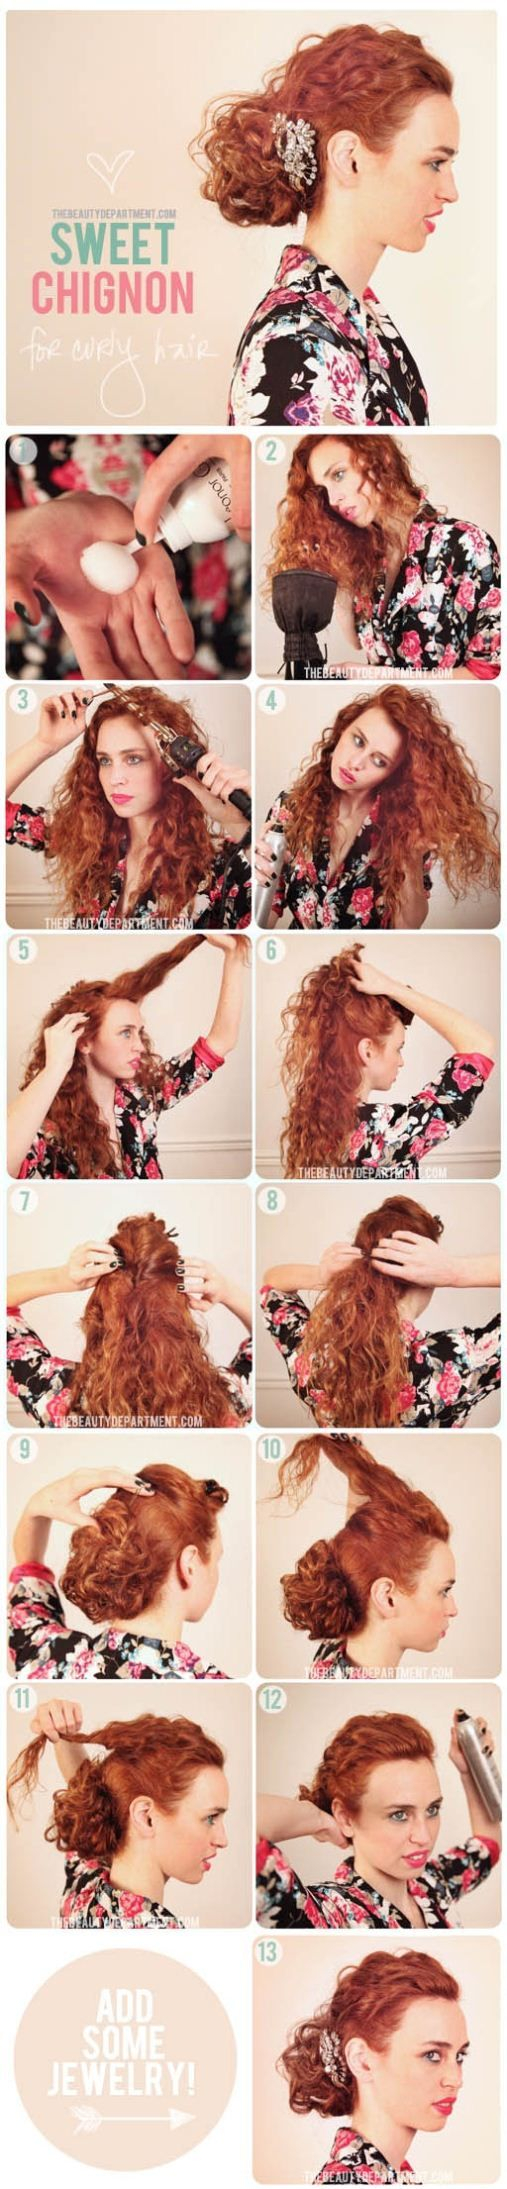 Naturally curly chignon tango hair pinterest curly hair styles